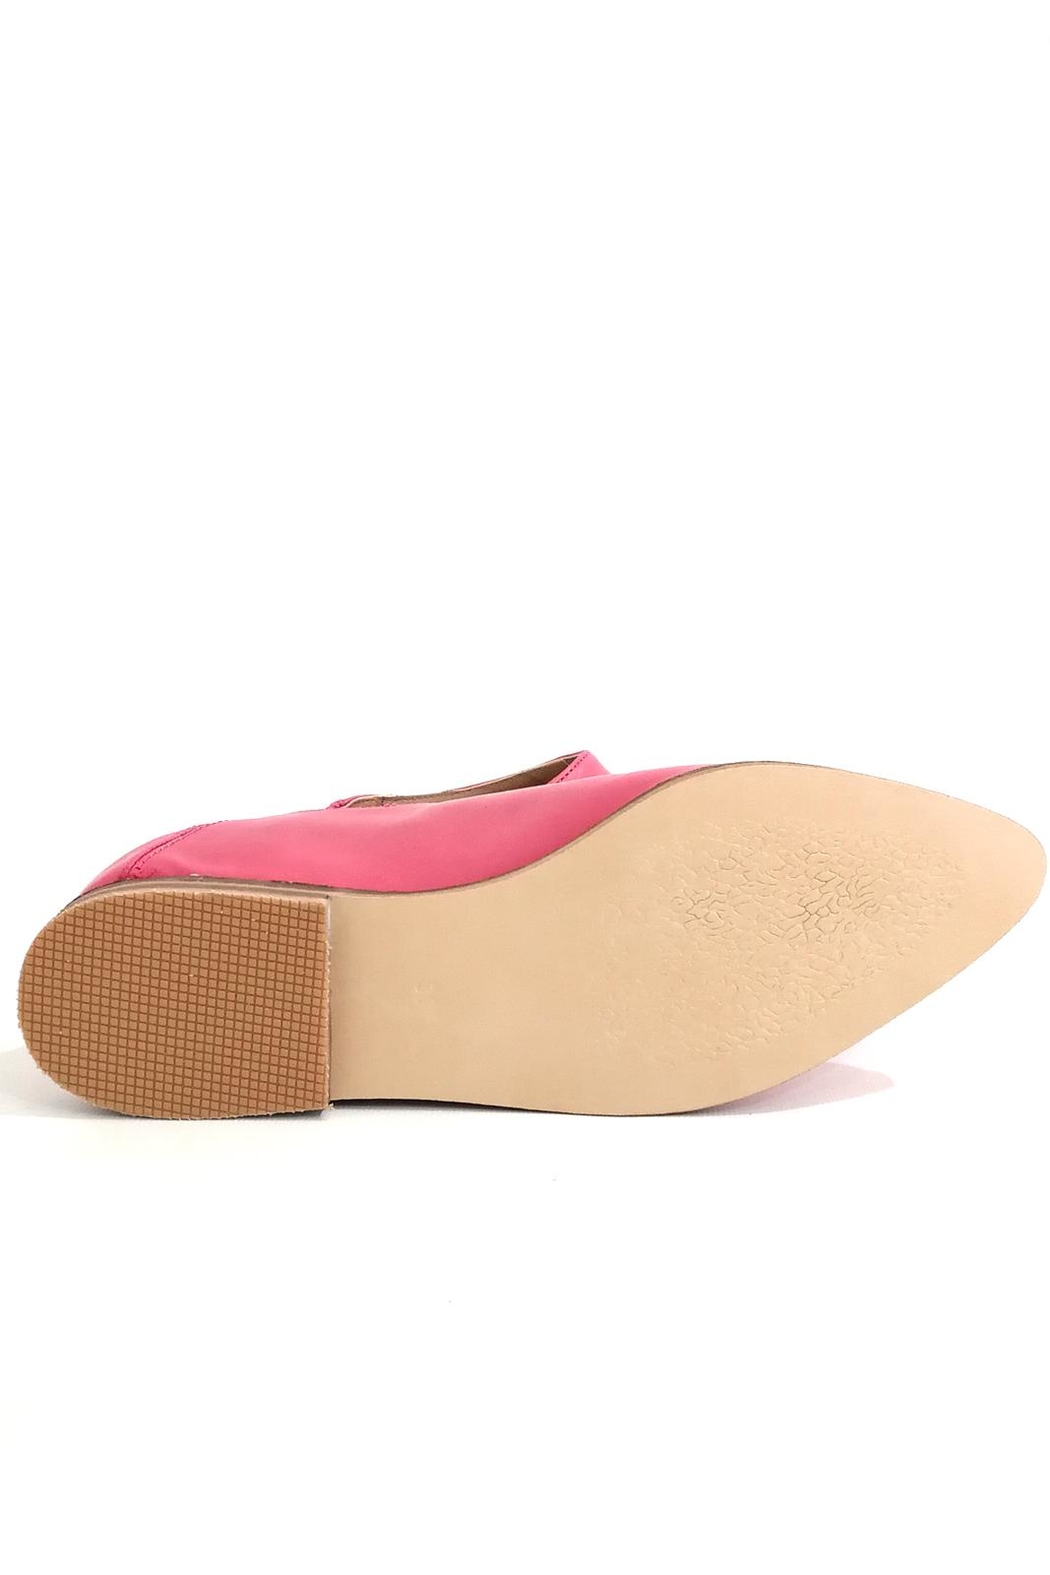 MIYE COLLAZZO Pink Mule Shoes - Back Cropped Image